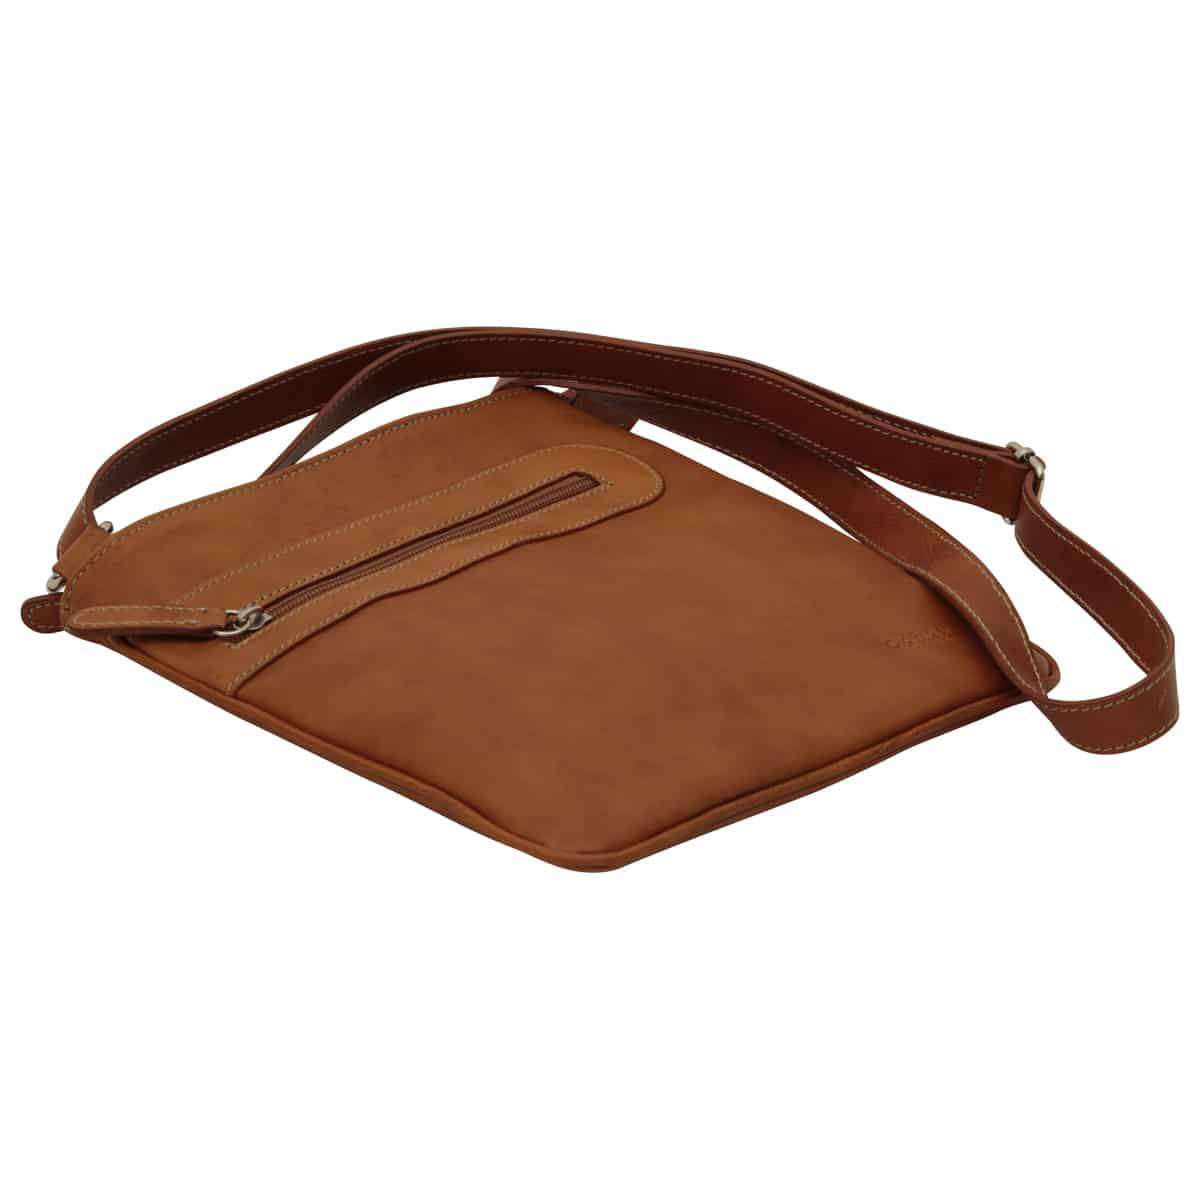 Leather cross body bag with zip pocket - Brown Colonial | 086161CO E | Old Angler Firenze